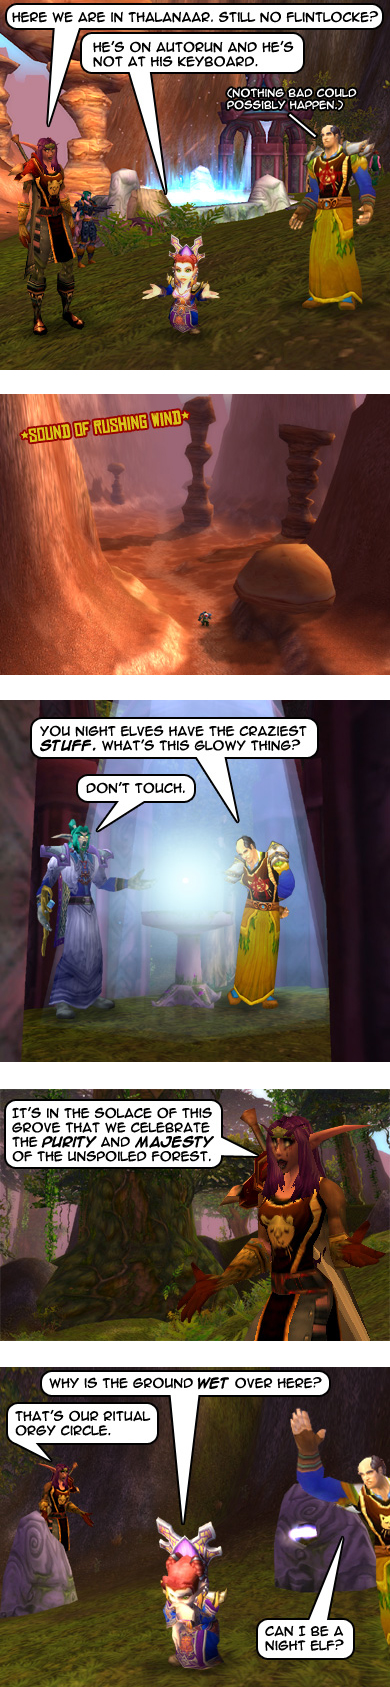 Running on empty - Part 4: Secrets of the Night Elves